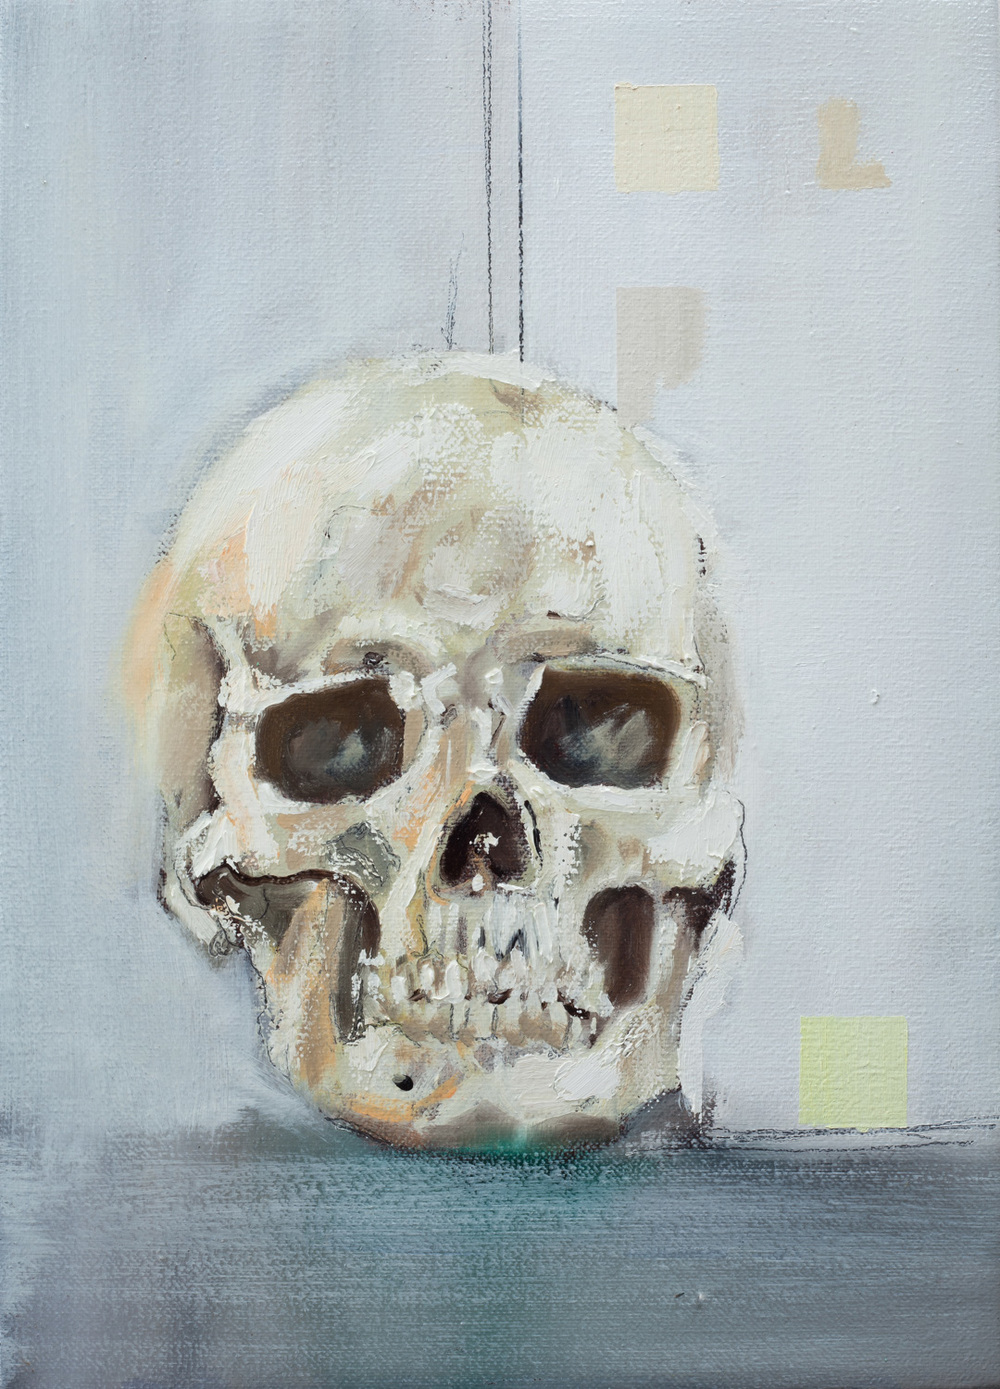 Untitled, oil on canvas, 30x40 cm, 2013